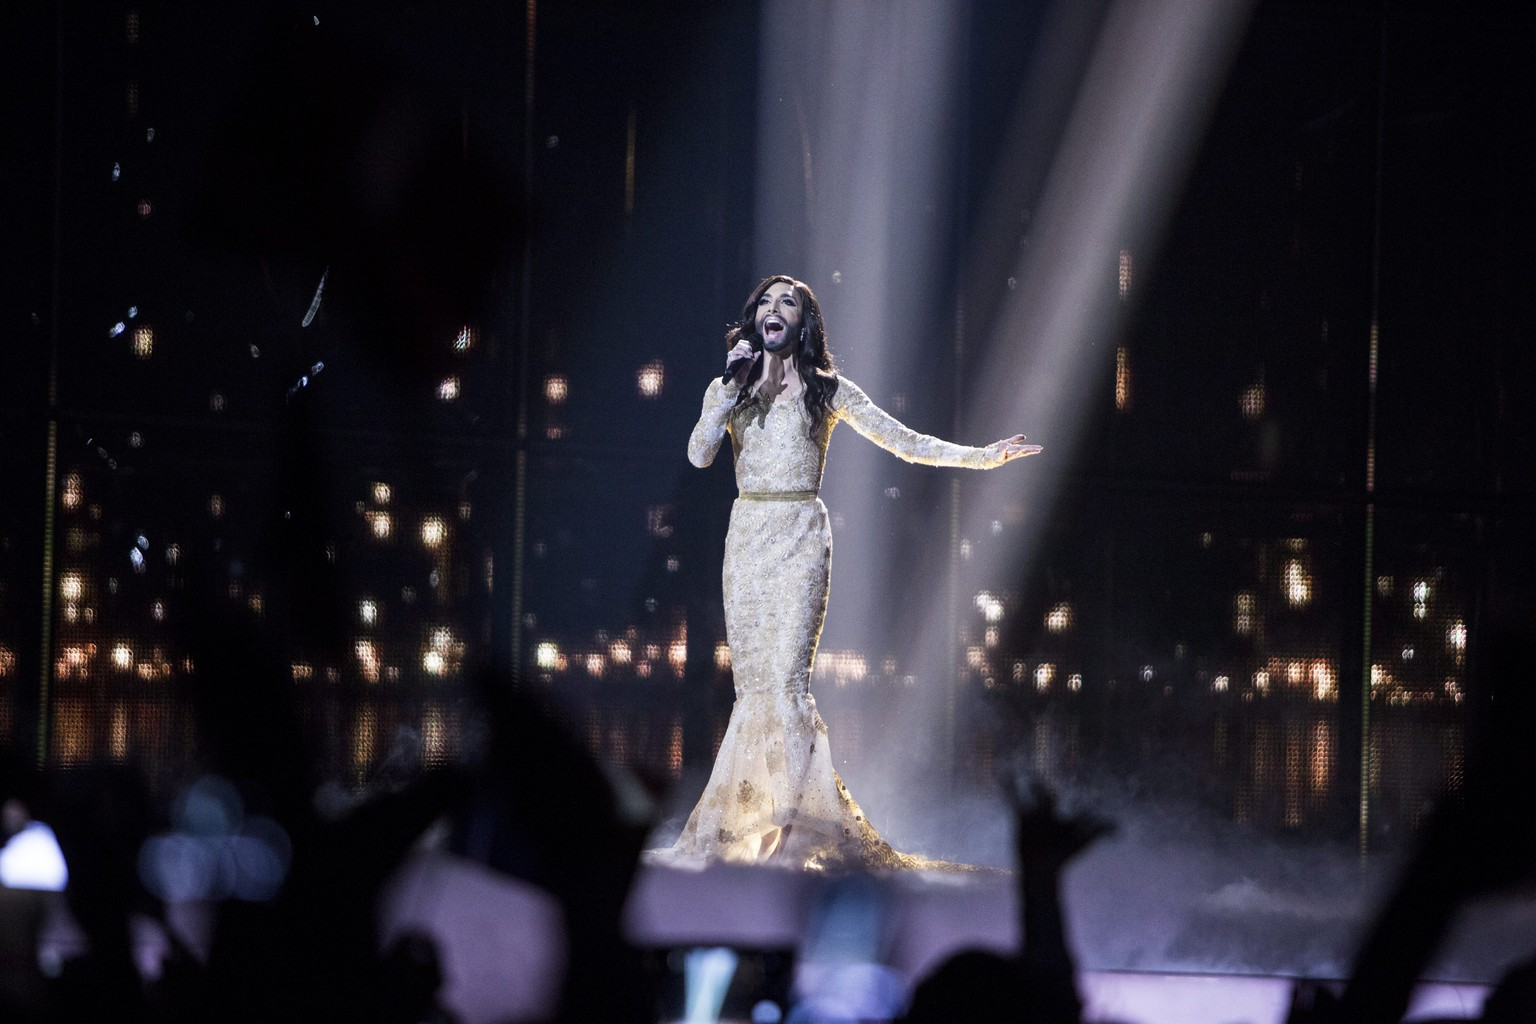 epaselect epa04197194 Conchita Wurst representing Austria performs during the Second Semi-Final of the 59th annual Eurovision Song Contest at the B&W Hallerne in Copenhagen, Denmark, 08 May 2014. The grand finale will take place on 10 May.  EPA/NIKOLAI LINARES DENMARK OUT